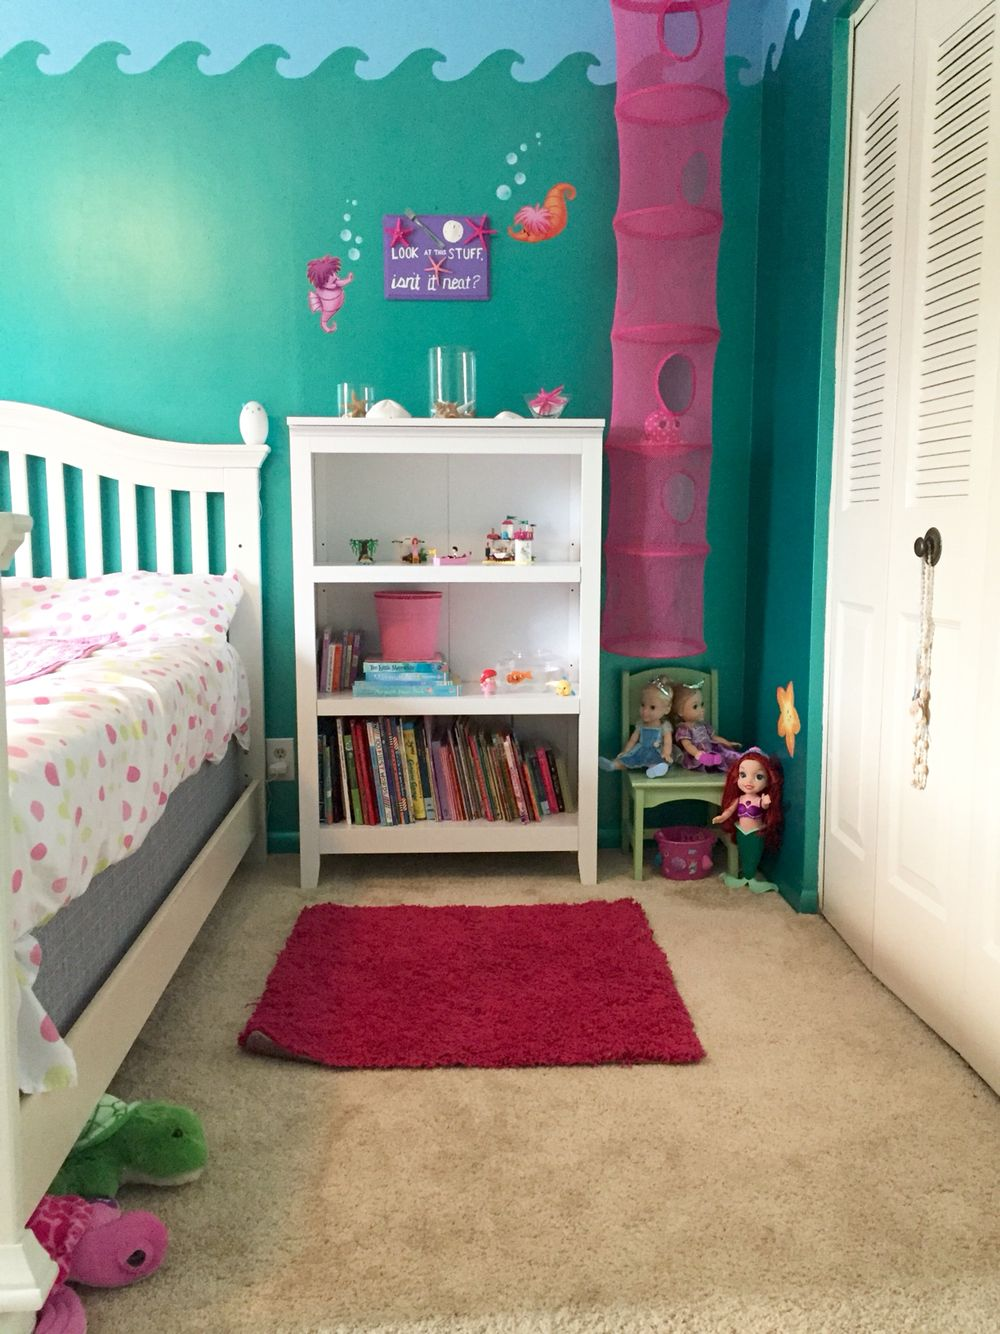 The little mermaid bedroom Ariel The little